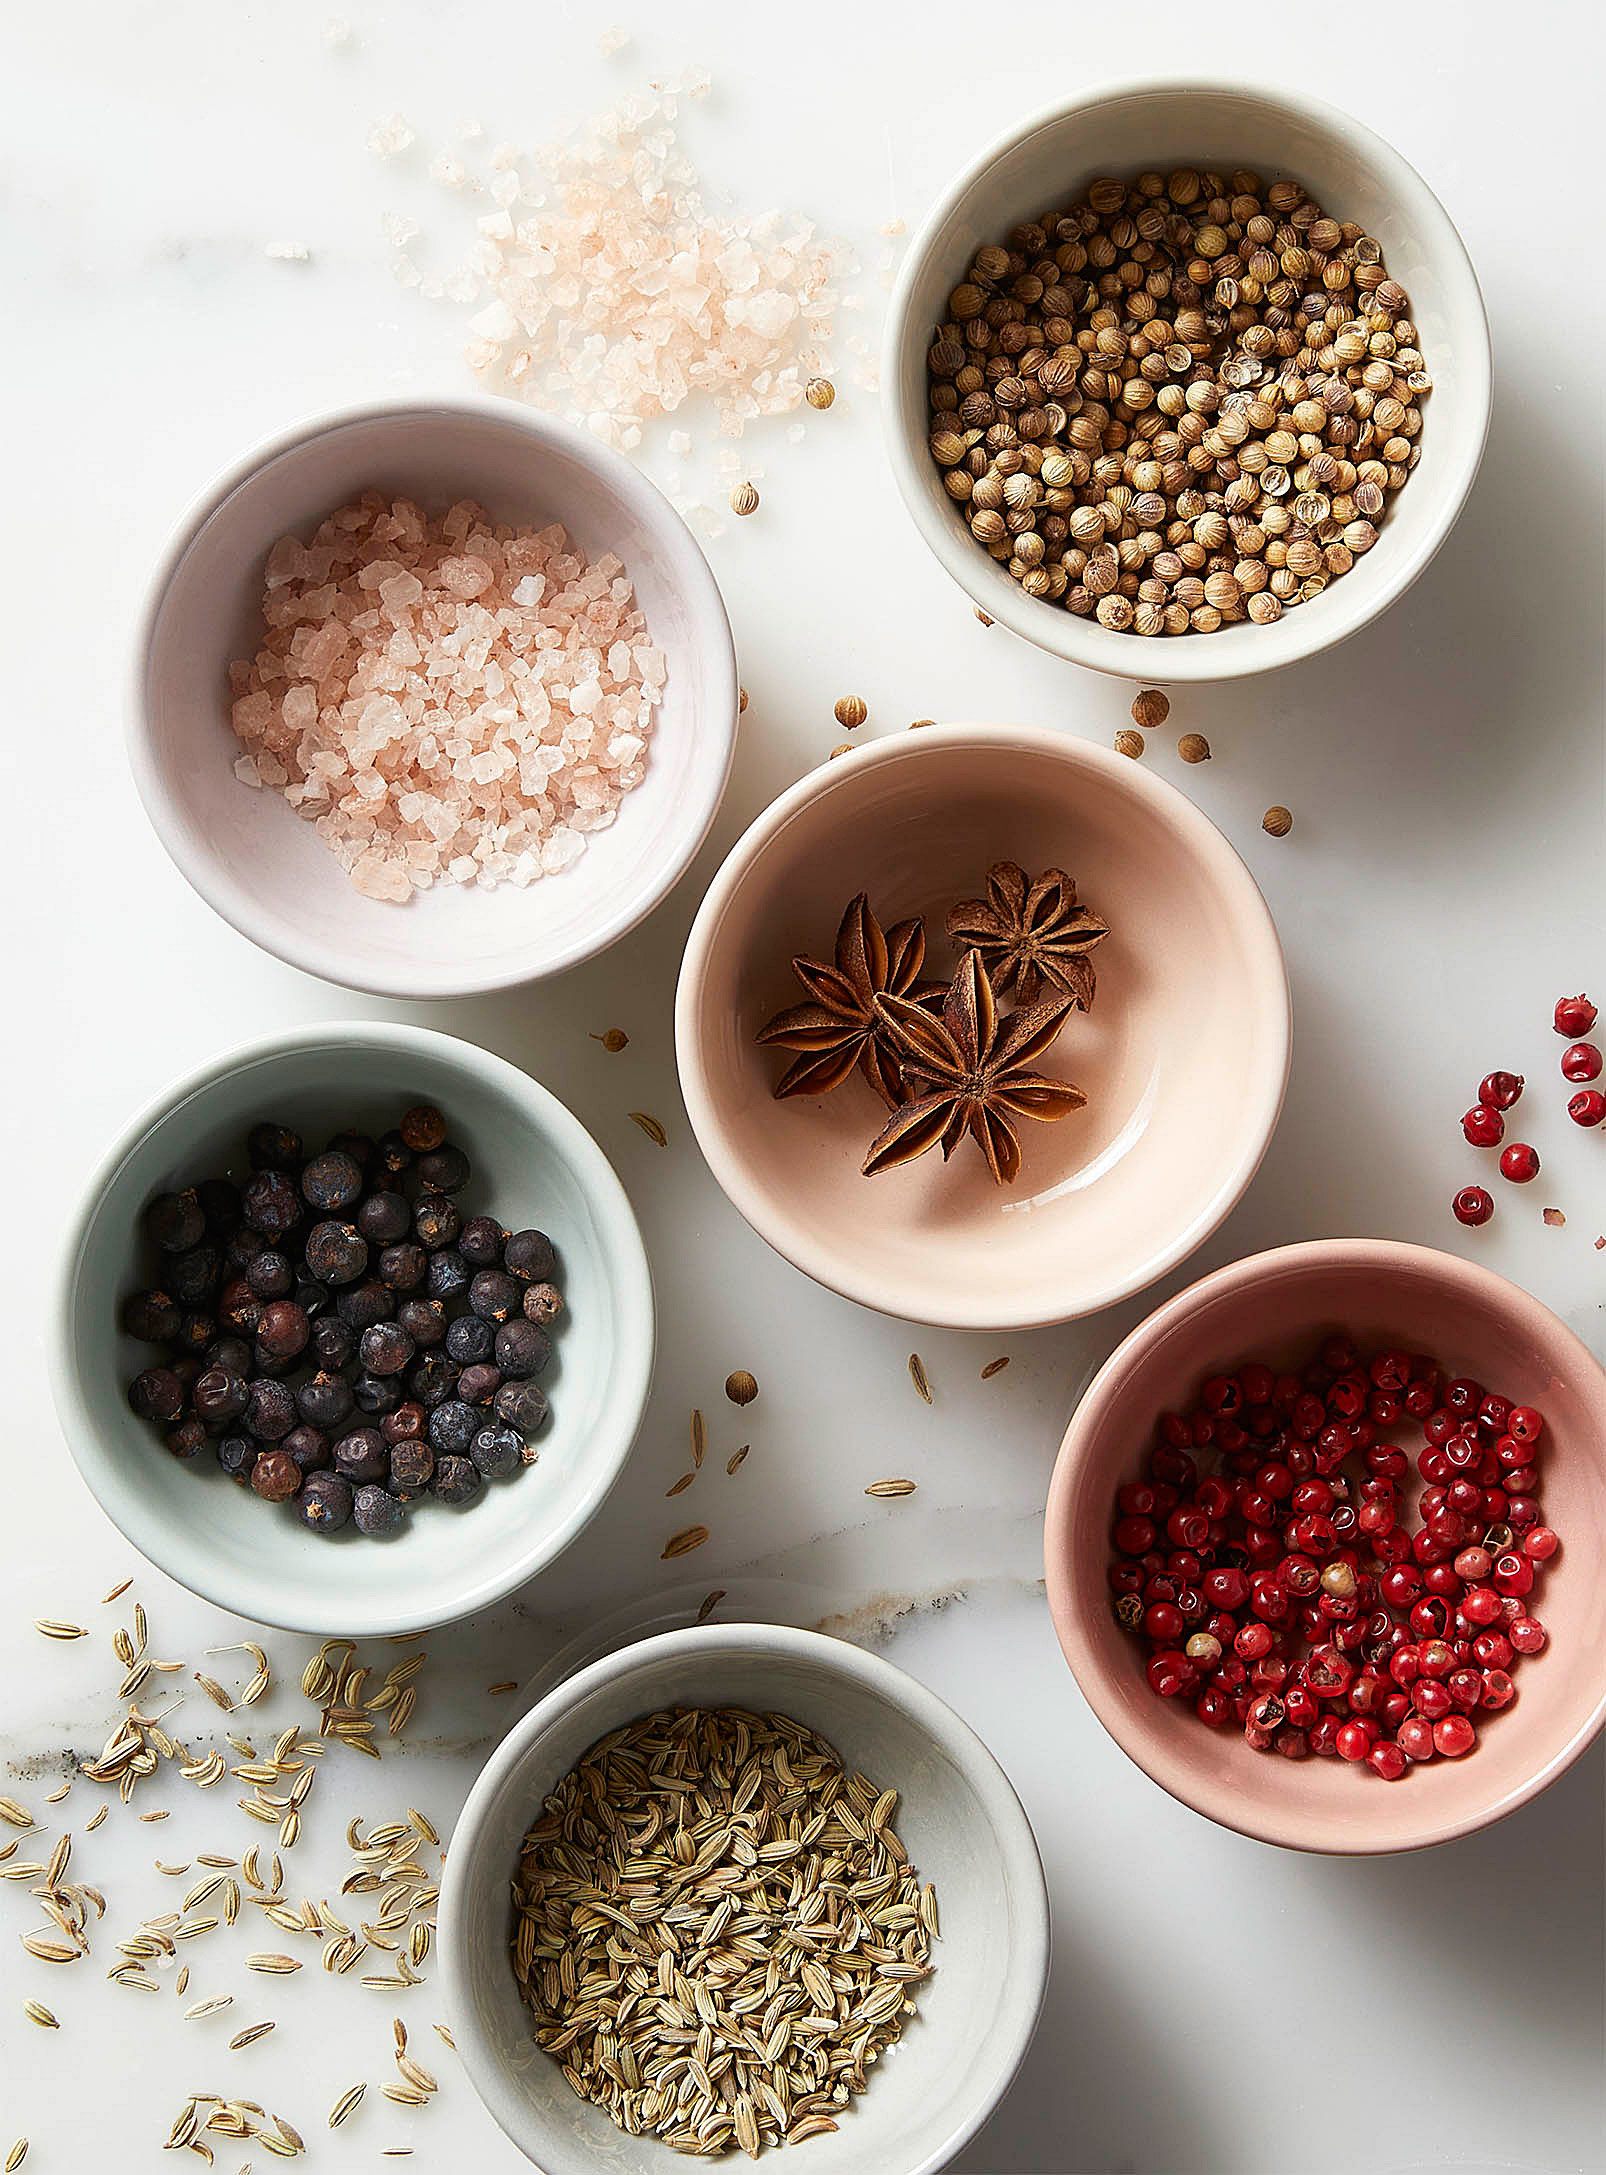 A set of six bowls filled with different ingredients on a counter